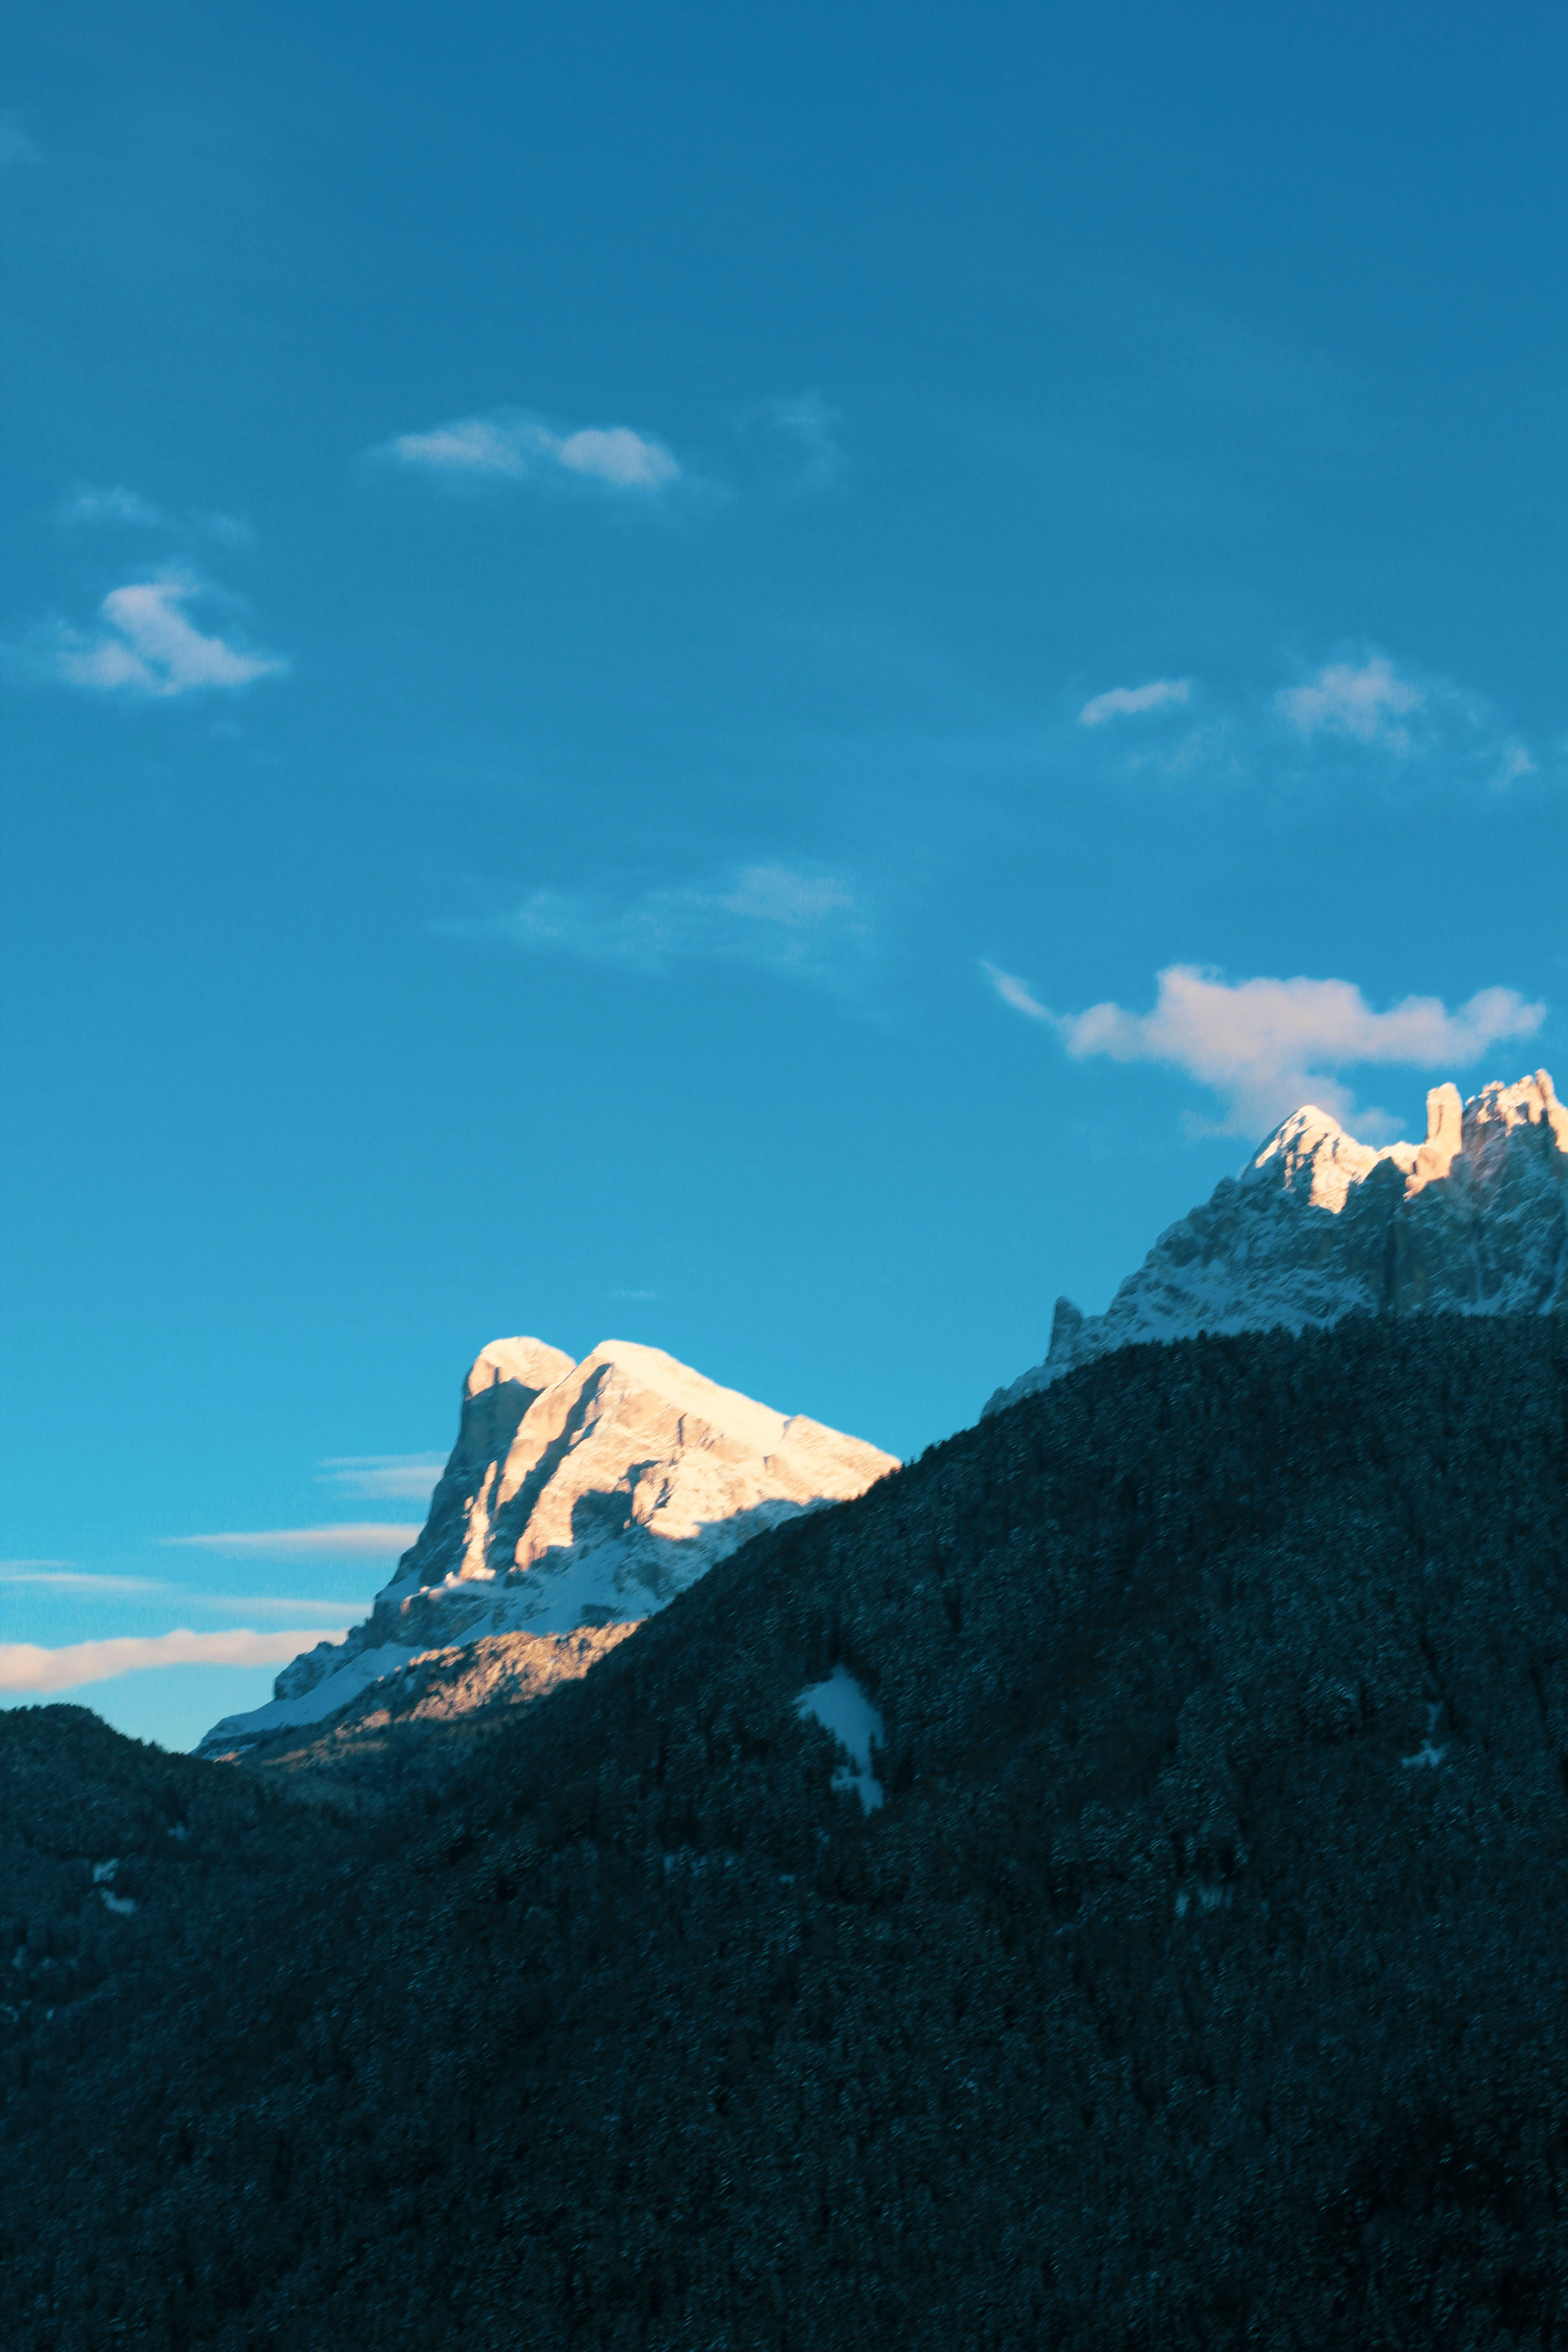 Nature Photography Of Snow Capped Mountain